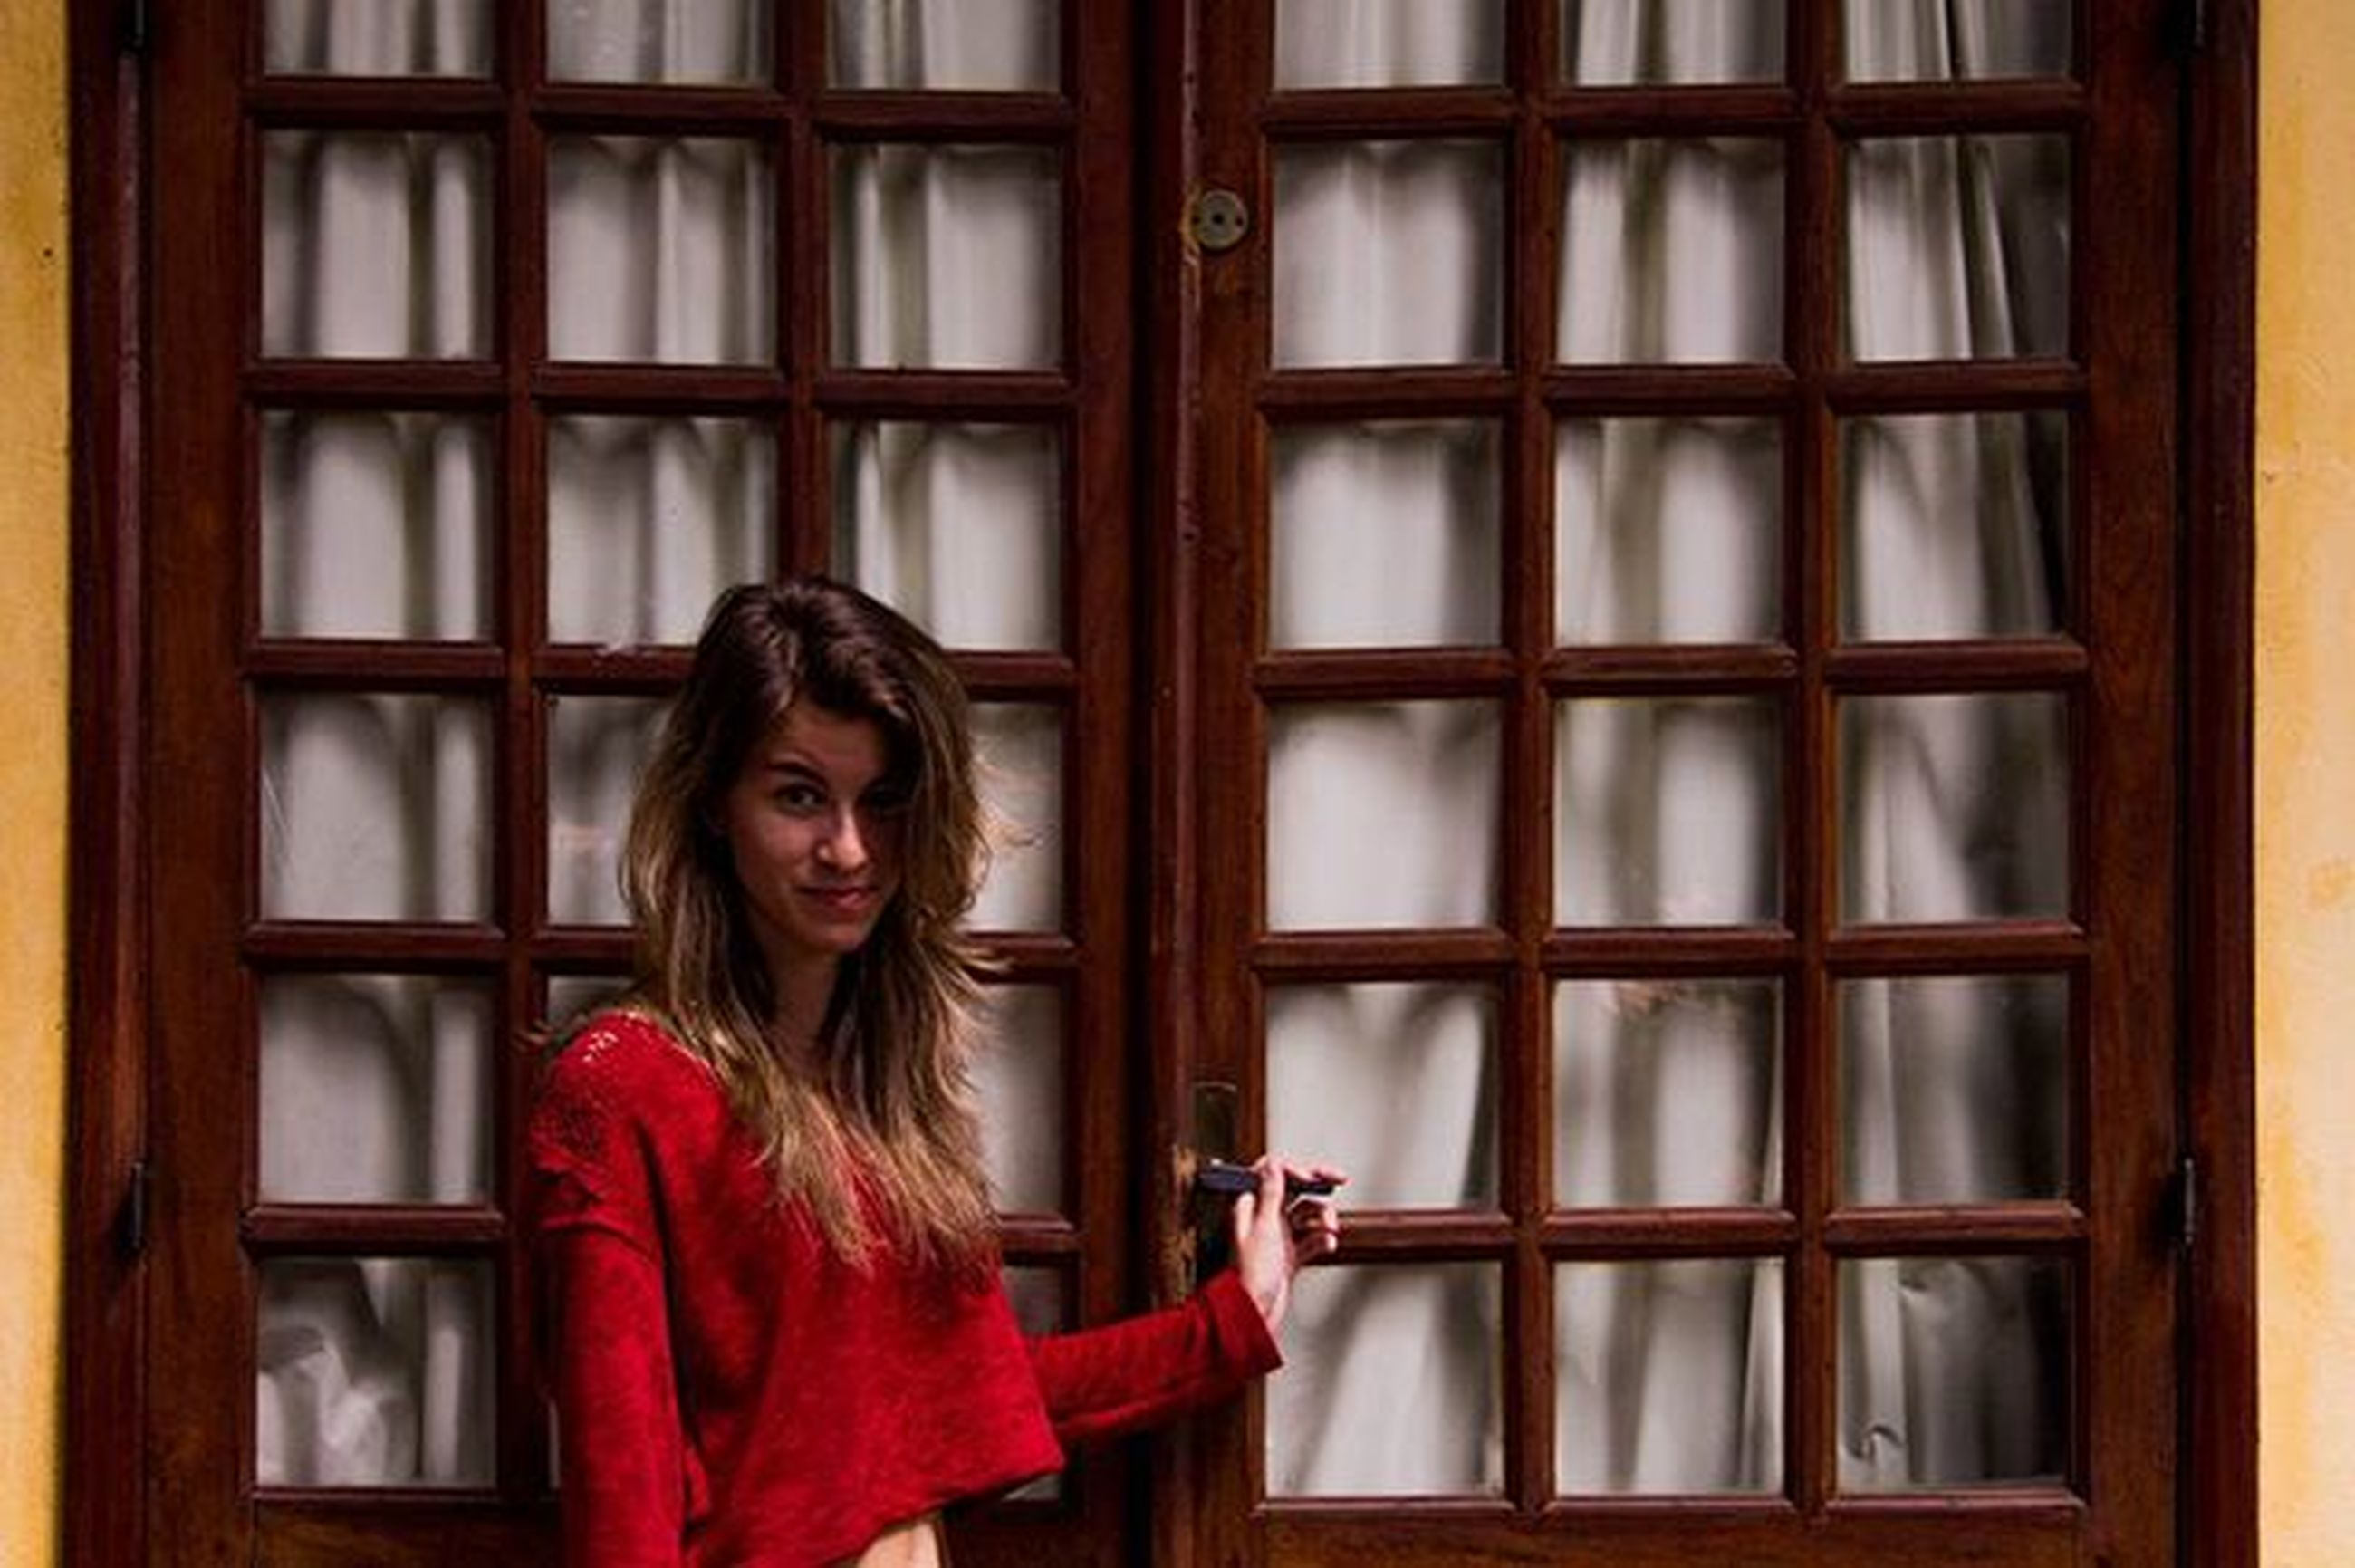 young adult, young women, lifestyles, window, person, looking at camera, front view, portrait, architecture, long hair, leisure activity, building exterior, built structure, indoors, casual clothing, standing, smiling